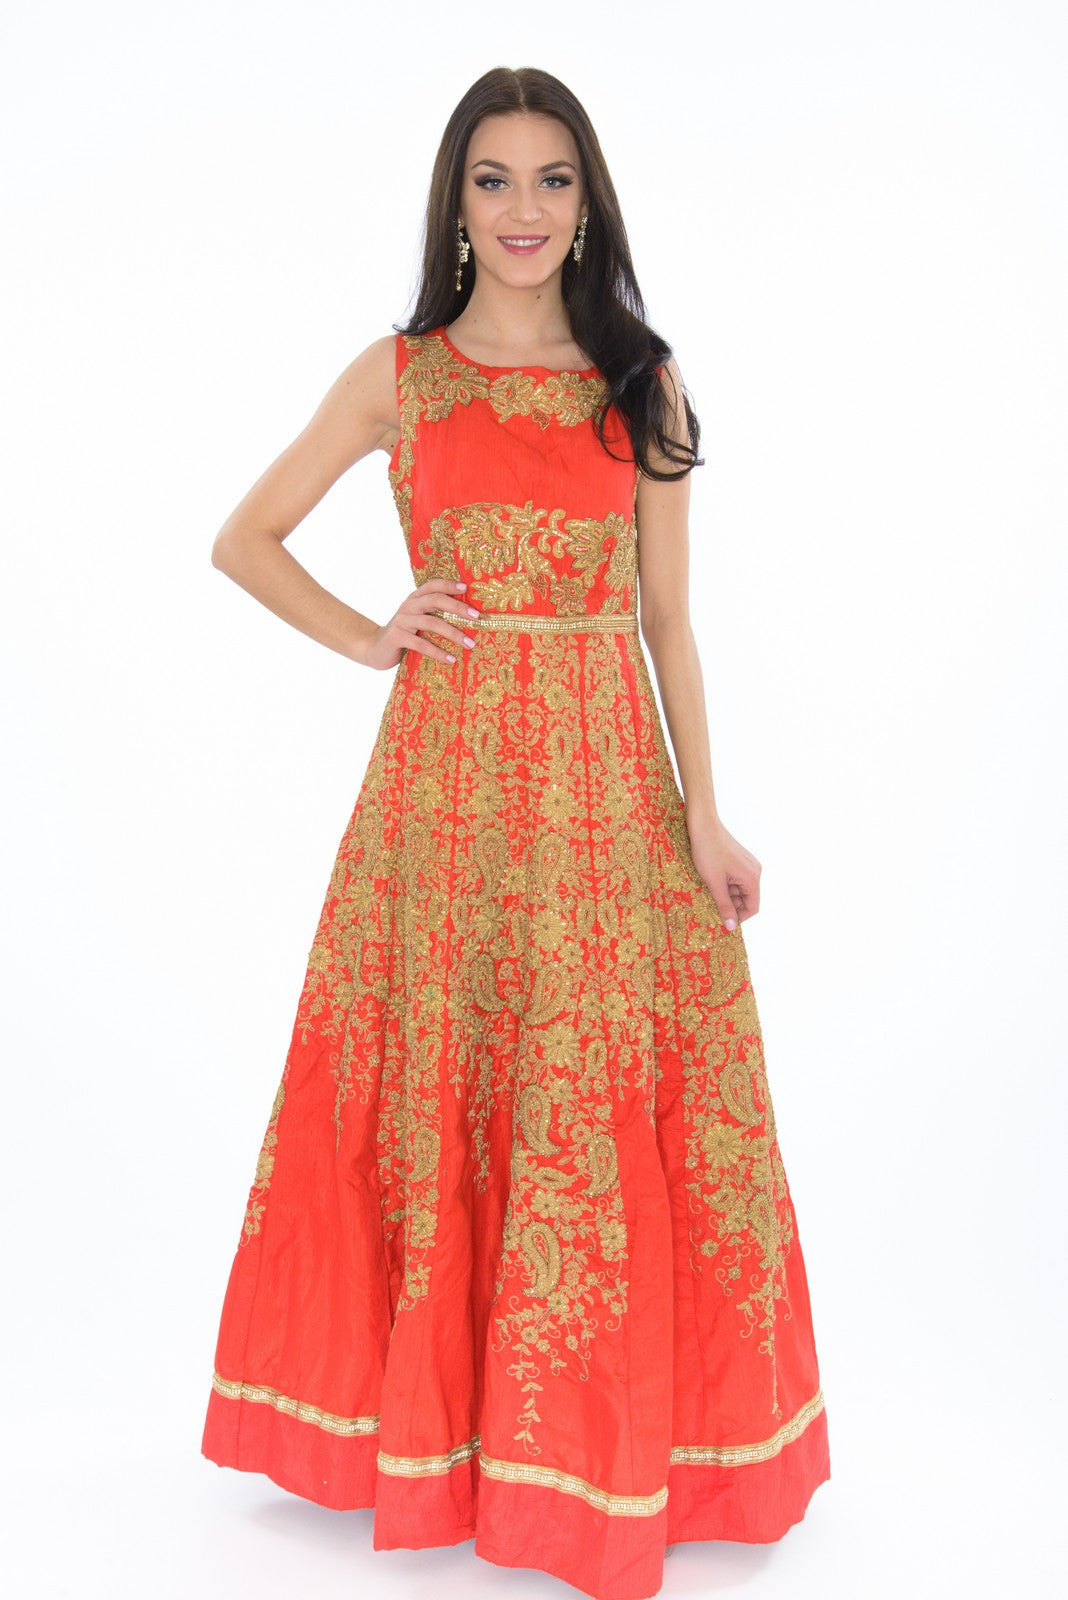 Majestic Red Amp Gold Embroidered Indo Western Indian